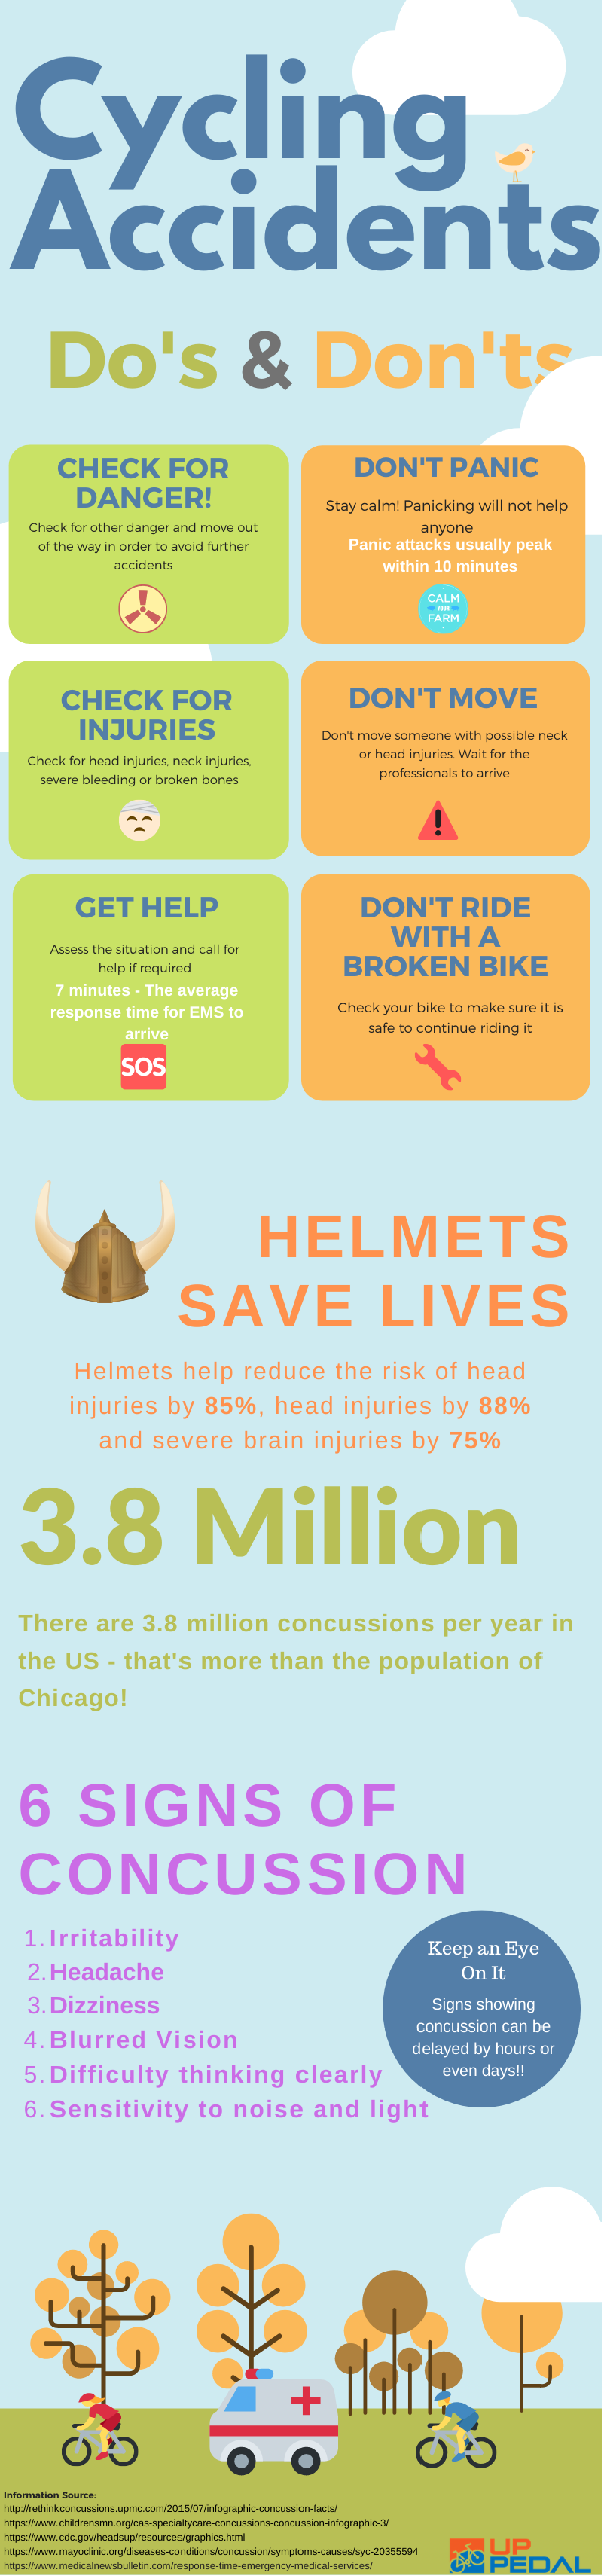 Cycling Accidents Dos and Donts